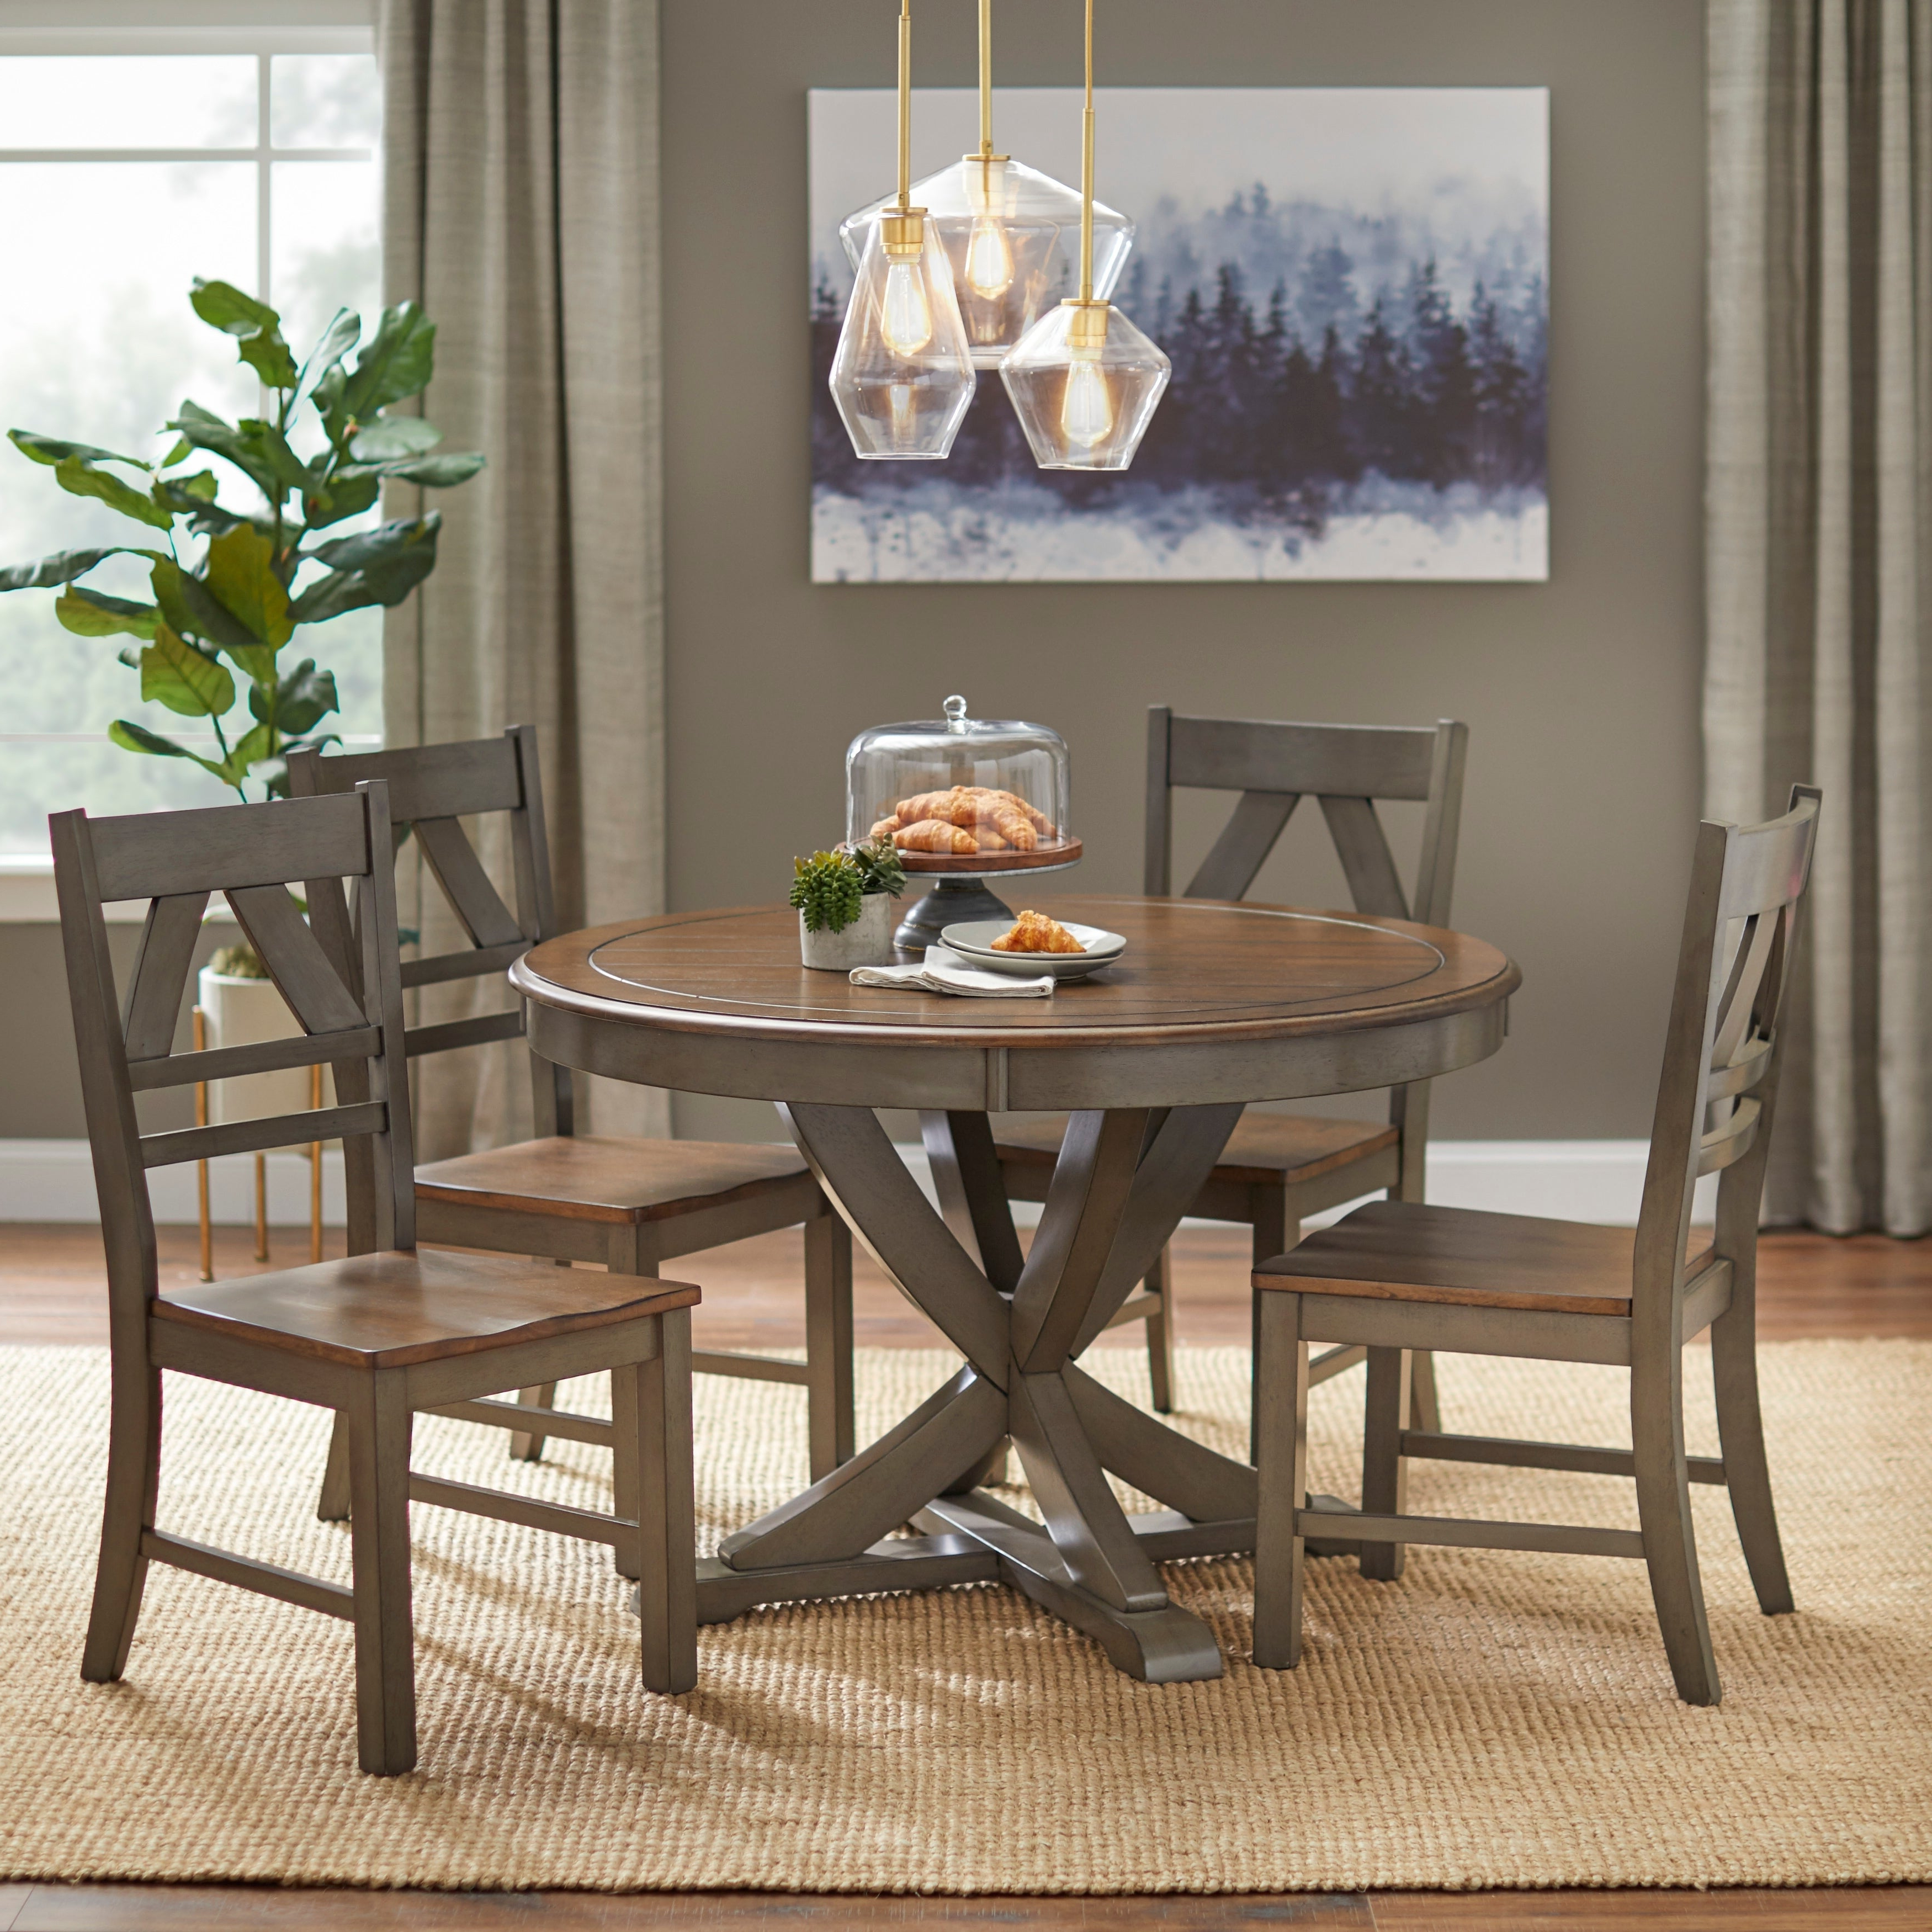 Trendy Buy 3 Piece Sets Kitchen & Dining Room Sets Online At Overstock With Regard To Rossiter 3 Piece Dining Sets (View 18 of 25)